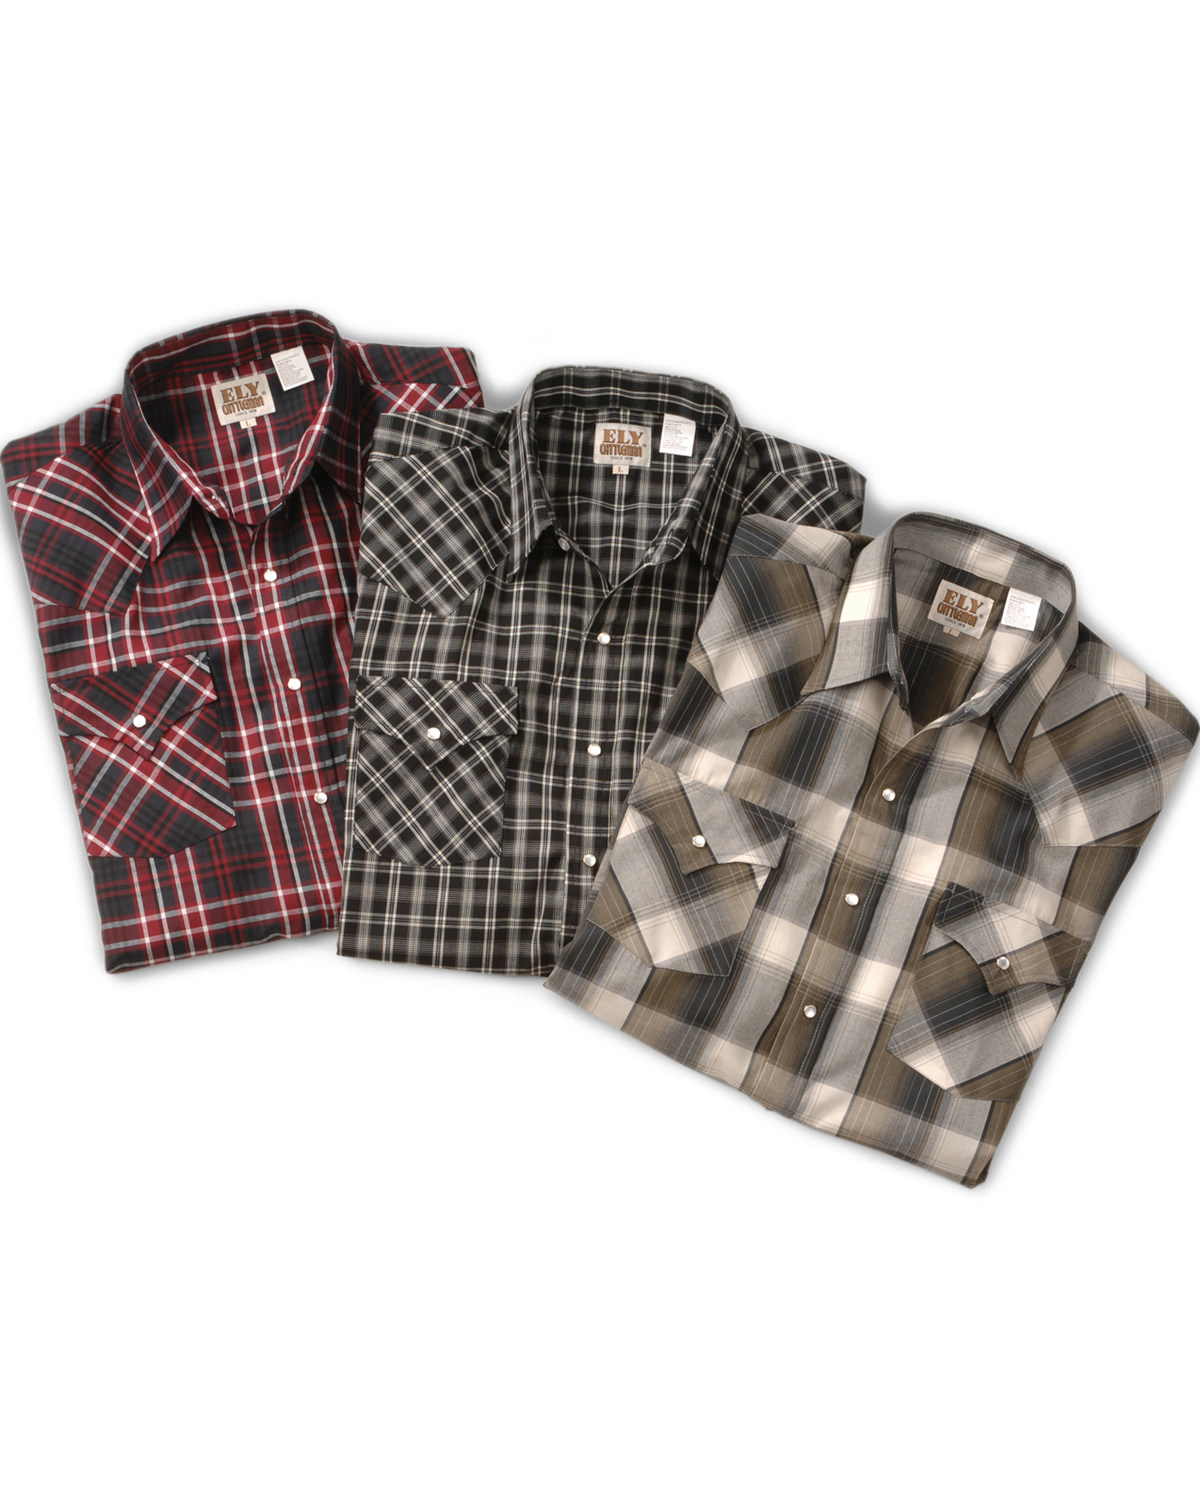 38936e86 Zoomed Image Ely Cattleman Men's Assorted Plaid or Stripe Short Sleeve  Western Shirt - Big & Tall,